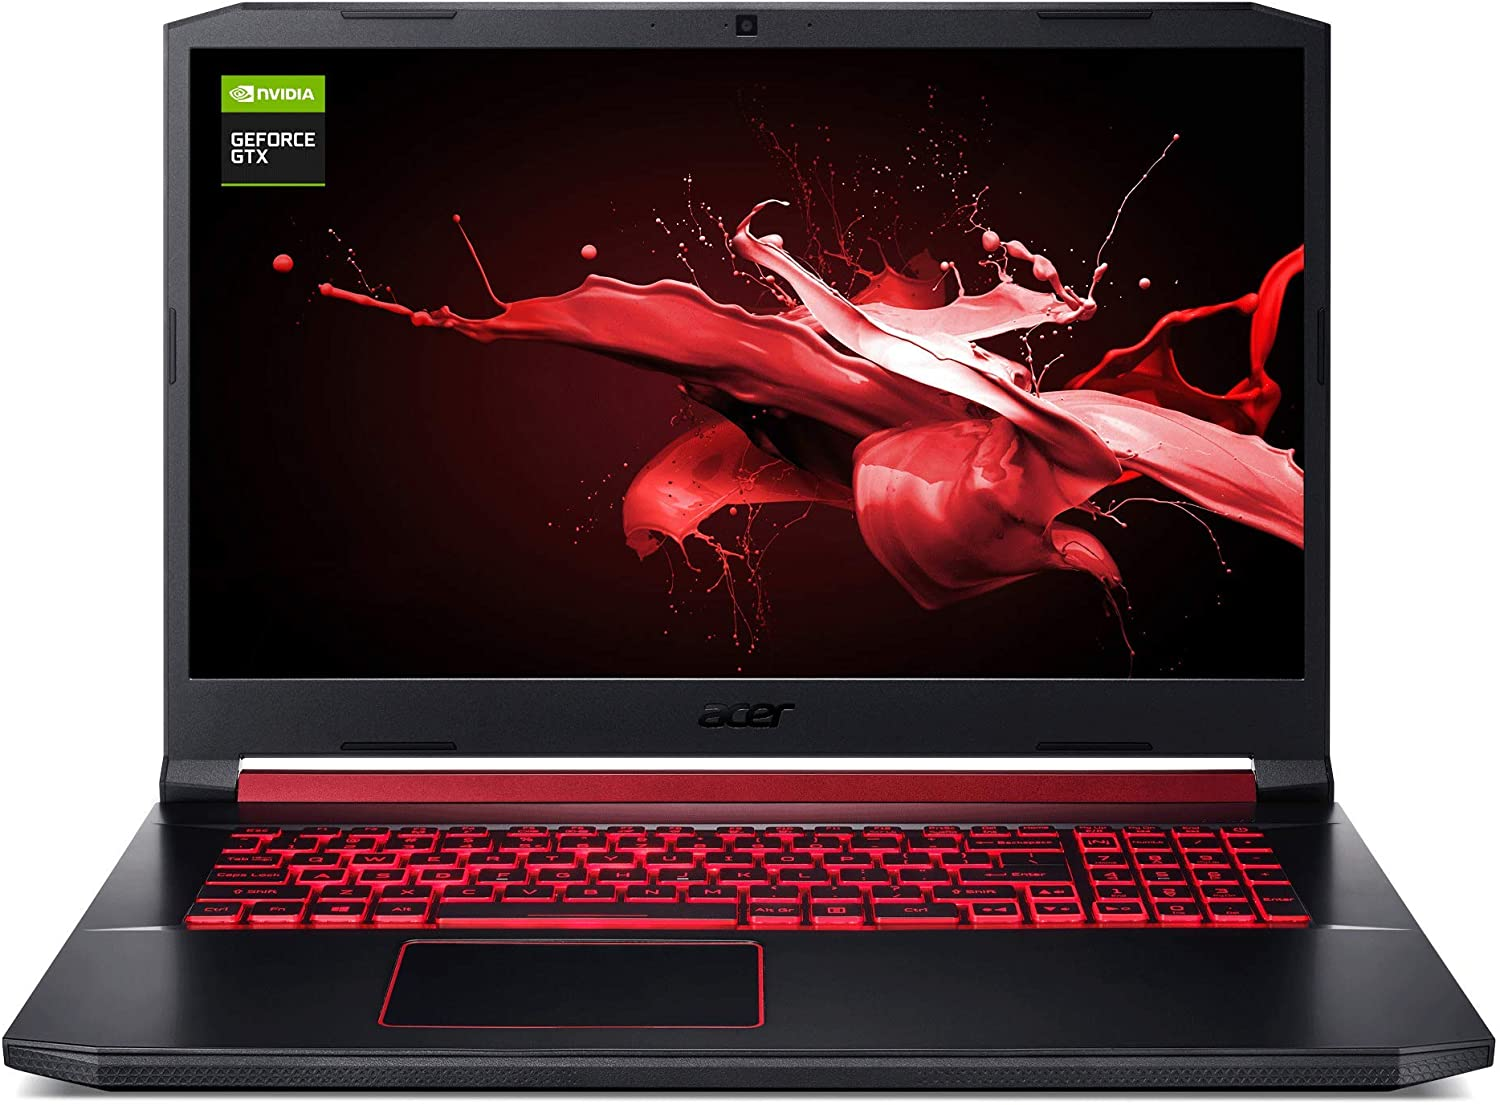 "Acer Nitro 7 Gaming Laptop, 15.6"" Full HD IPS Display, 9th Gen Intel i7-9750H, GeForce GTX 1650 4GB, 16GB DDR4, 512GB PCIe NVMe SSD, Backlit Keyboard, AN715-51-752B, 16GB / 512GB"